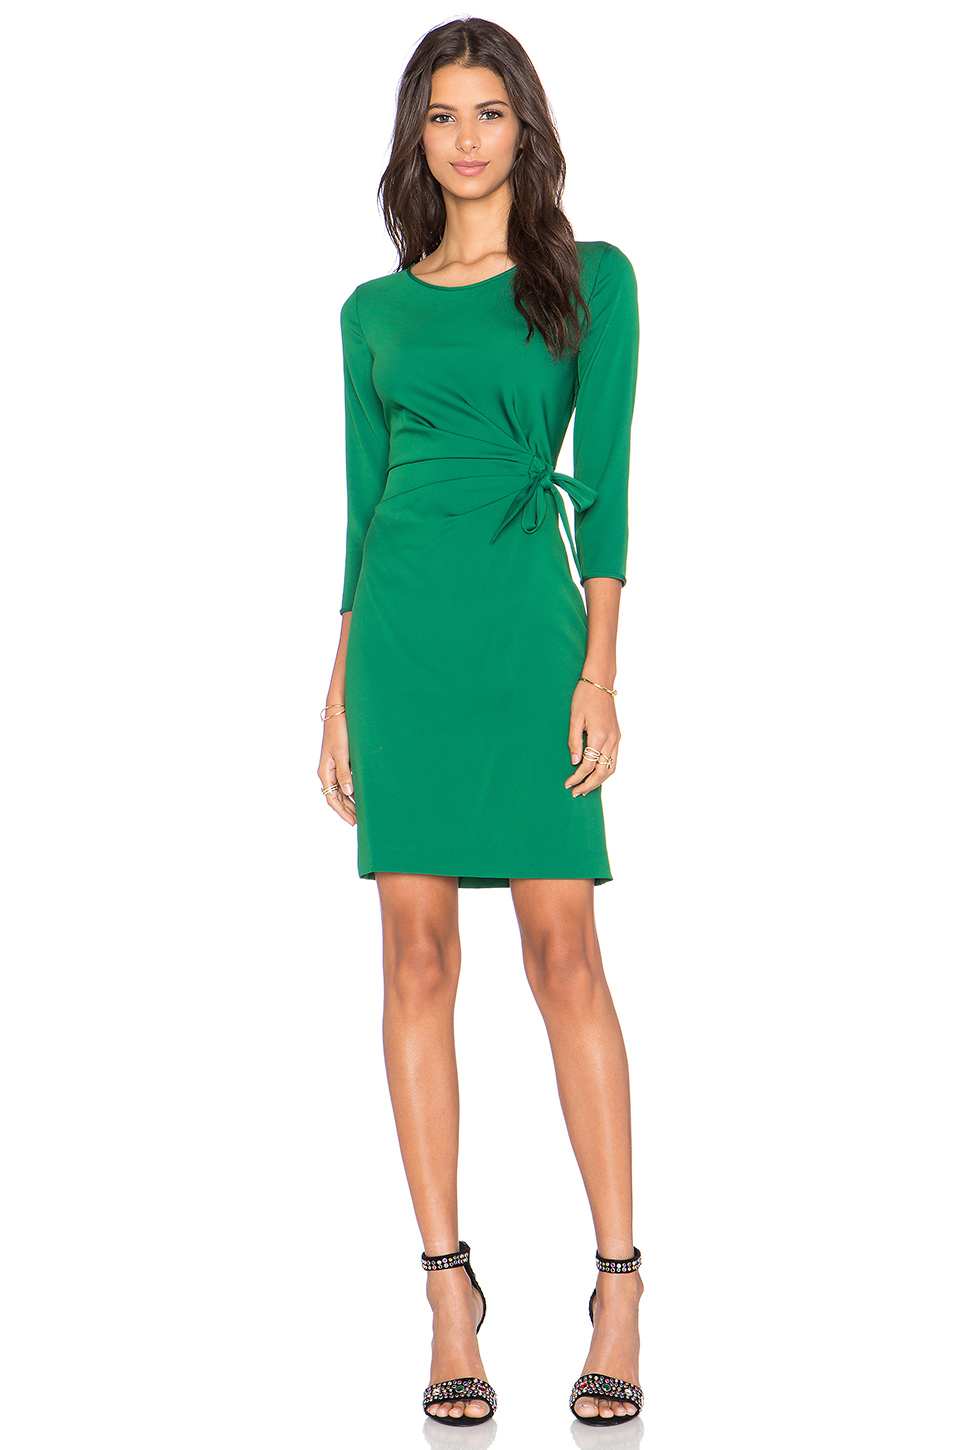 Lyst - Diane Von Furstenberg Zoe Dress in Green